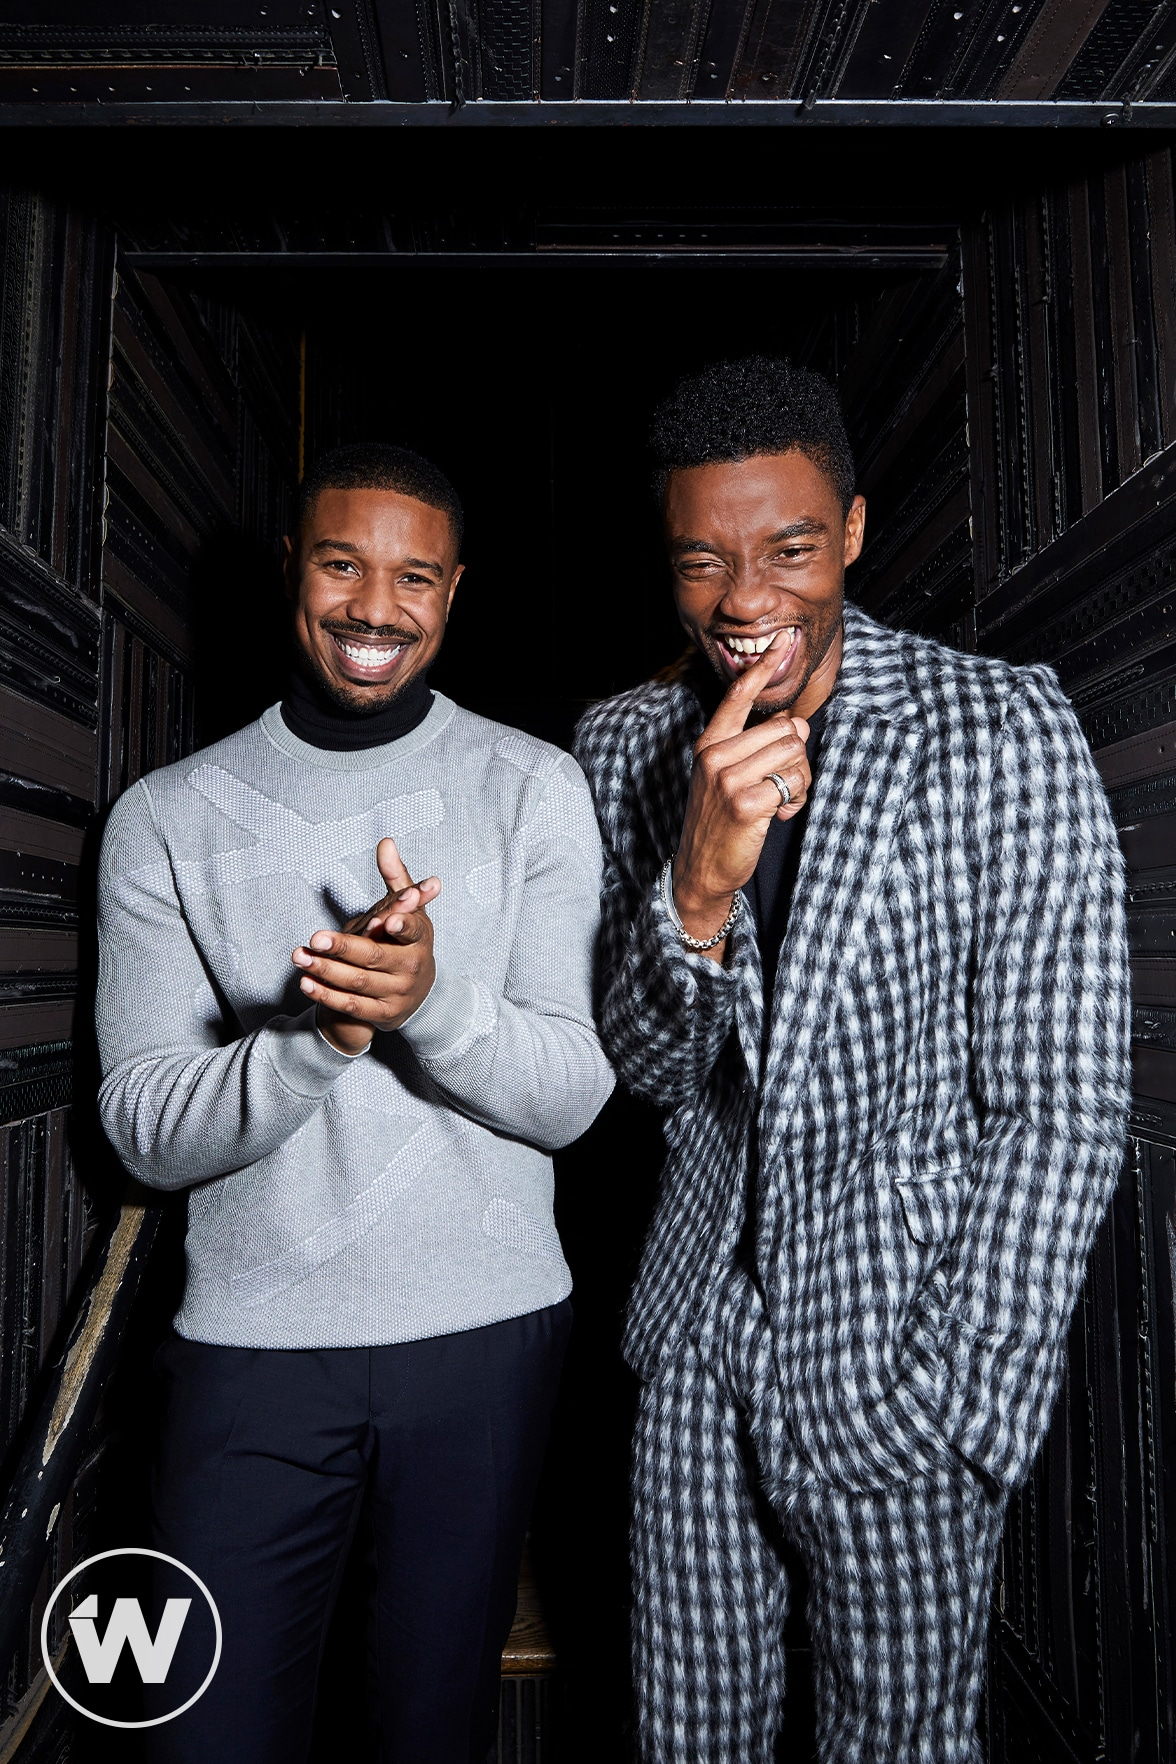 """Black Panther"" Michael B Jordan and Chadwick Boseman"